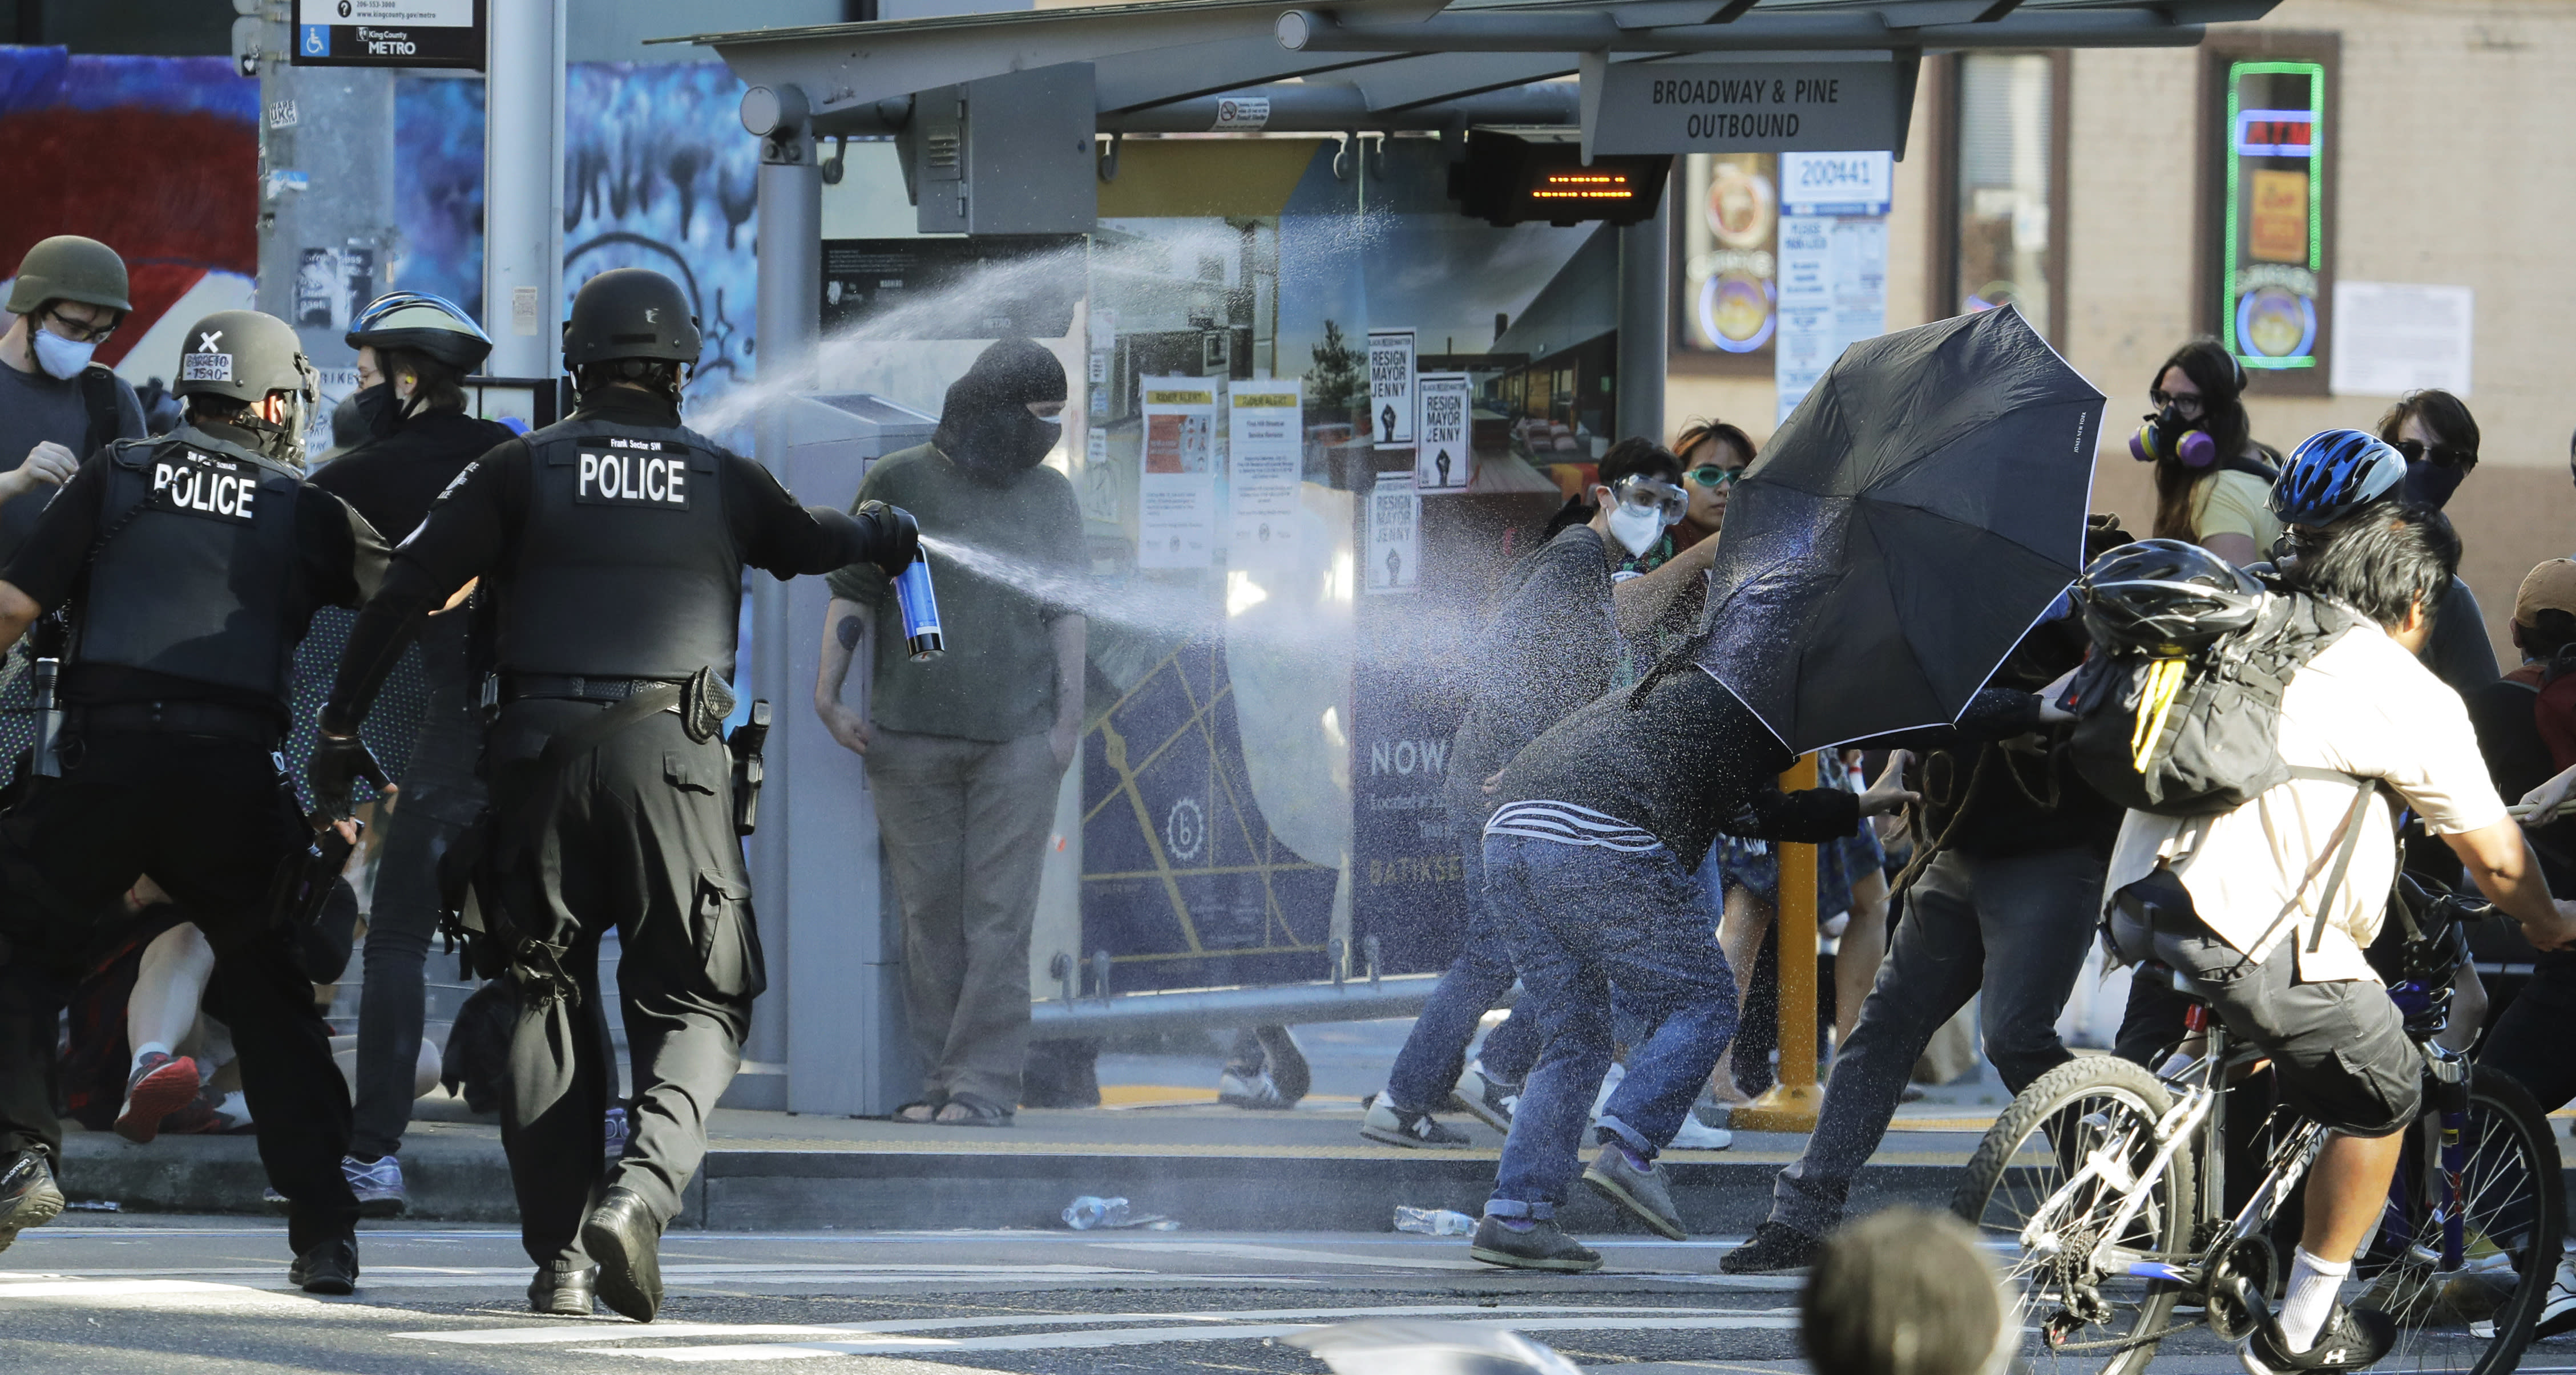 Police pepper spray protesters Saturday, July 25, 2020, near Seattle Central Community College in Seattle. A large group of protesters were marching Saturday in Seattle in support of Black Lives Matter and against police brutality and racial injustice. (AP Photo/Ted S. Warren)